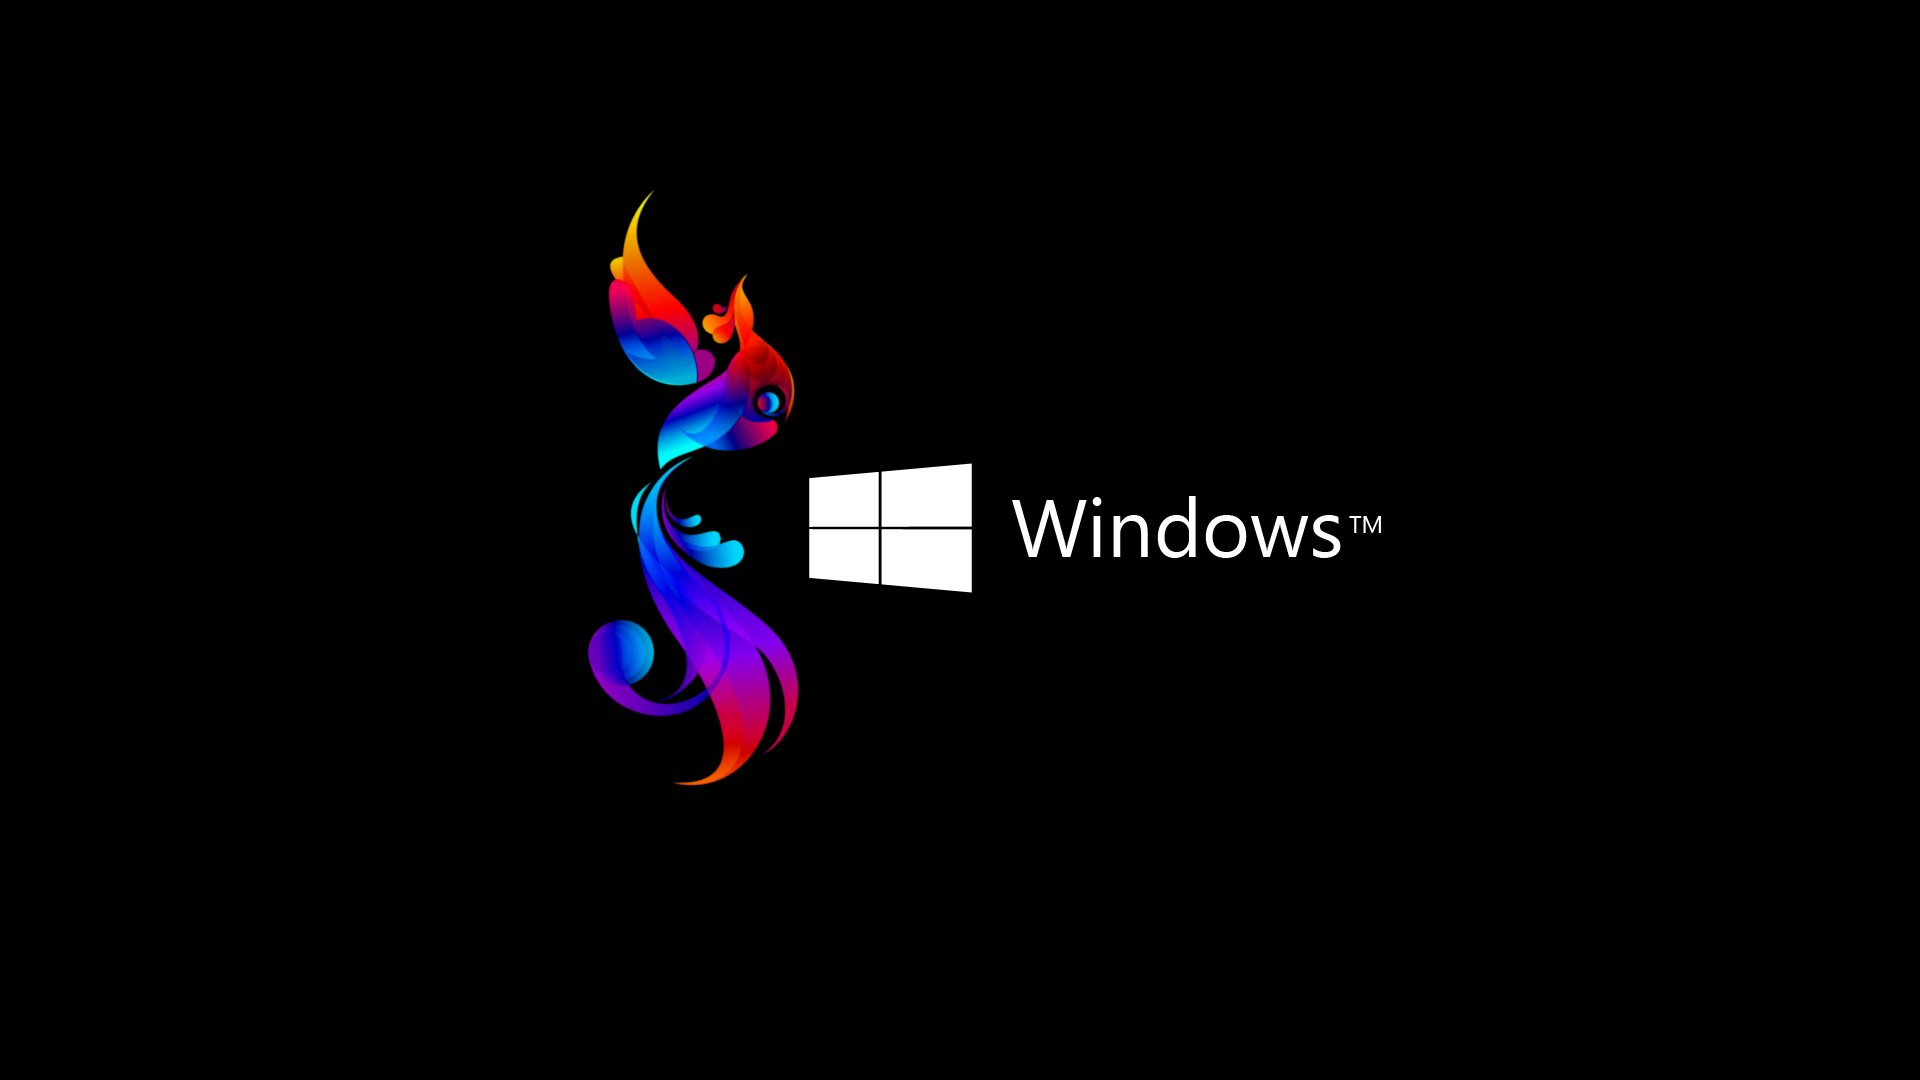 microsoft windows wallpapers by gifteddeviant - photo #8